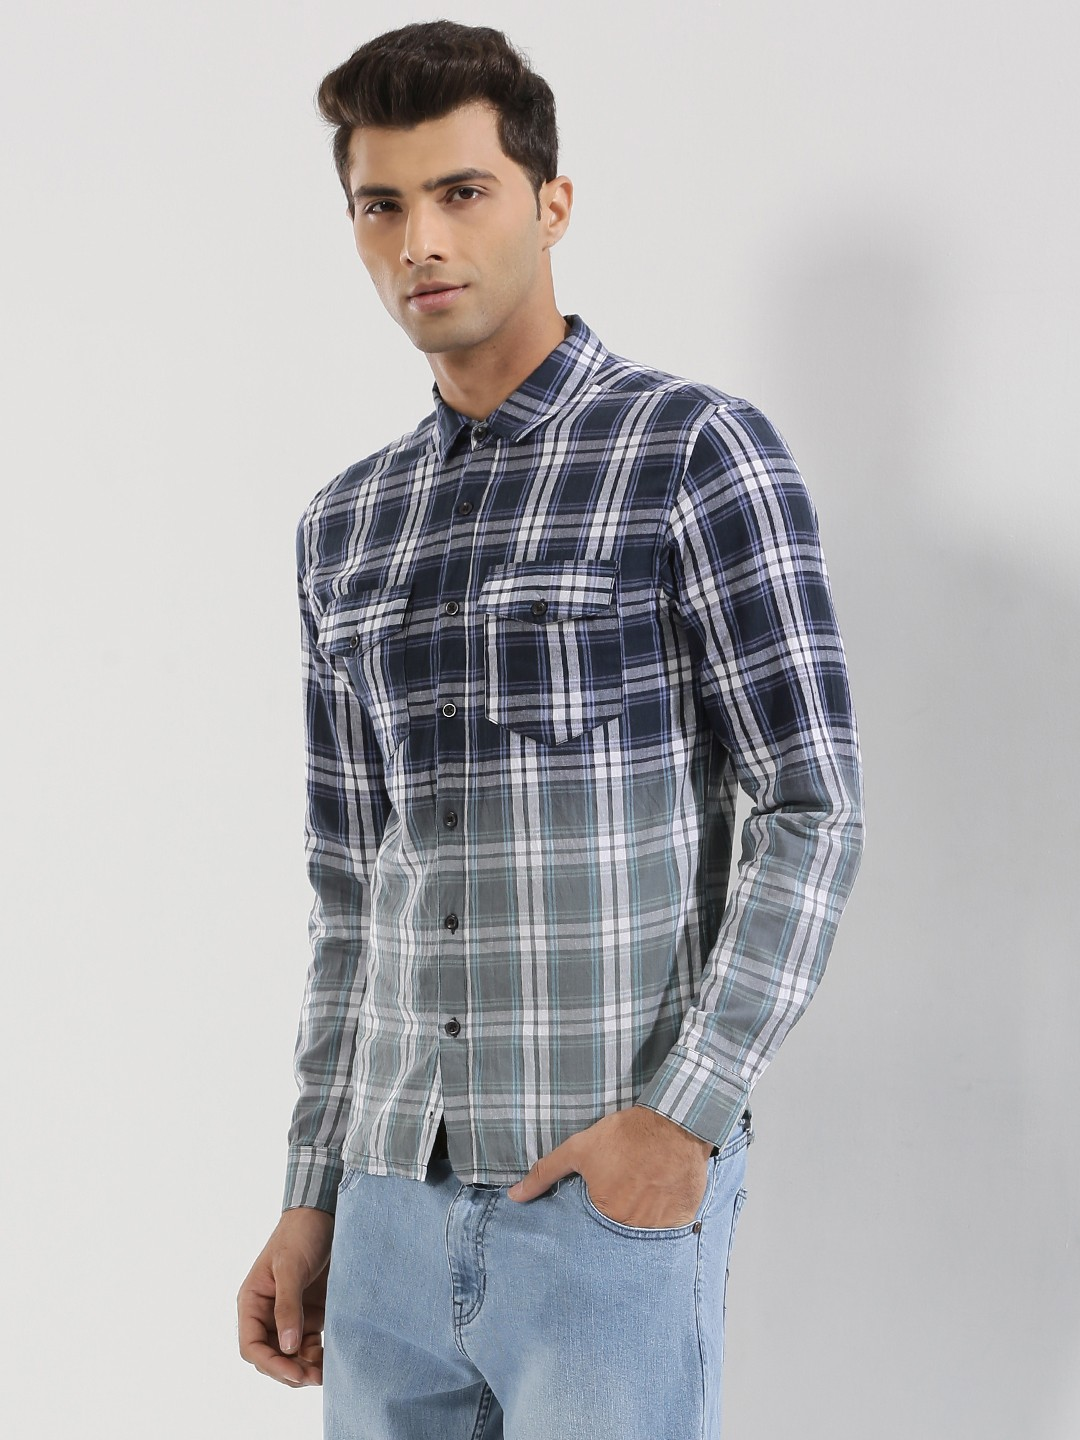 KOOVS Multi Bleached Check Shirt In The Style Of Lewis Hamilton 1